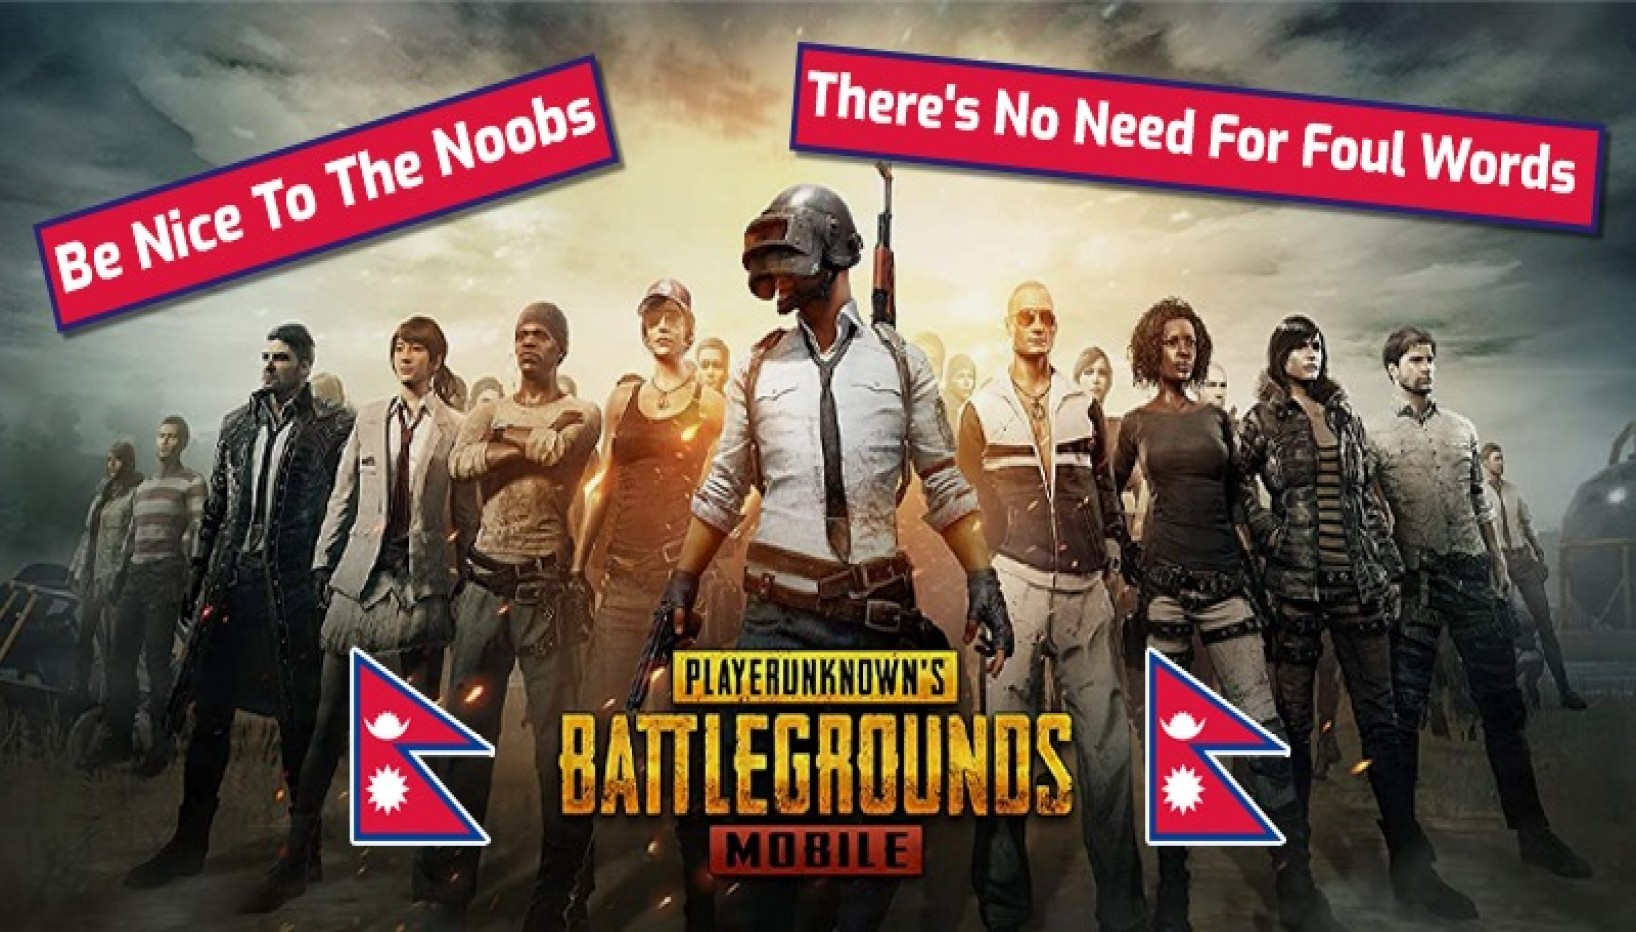 How To Not Be An Asshole On PUBG Mobile (As A Nepali)